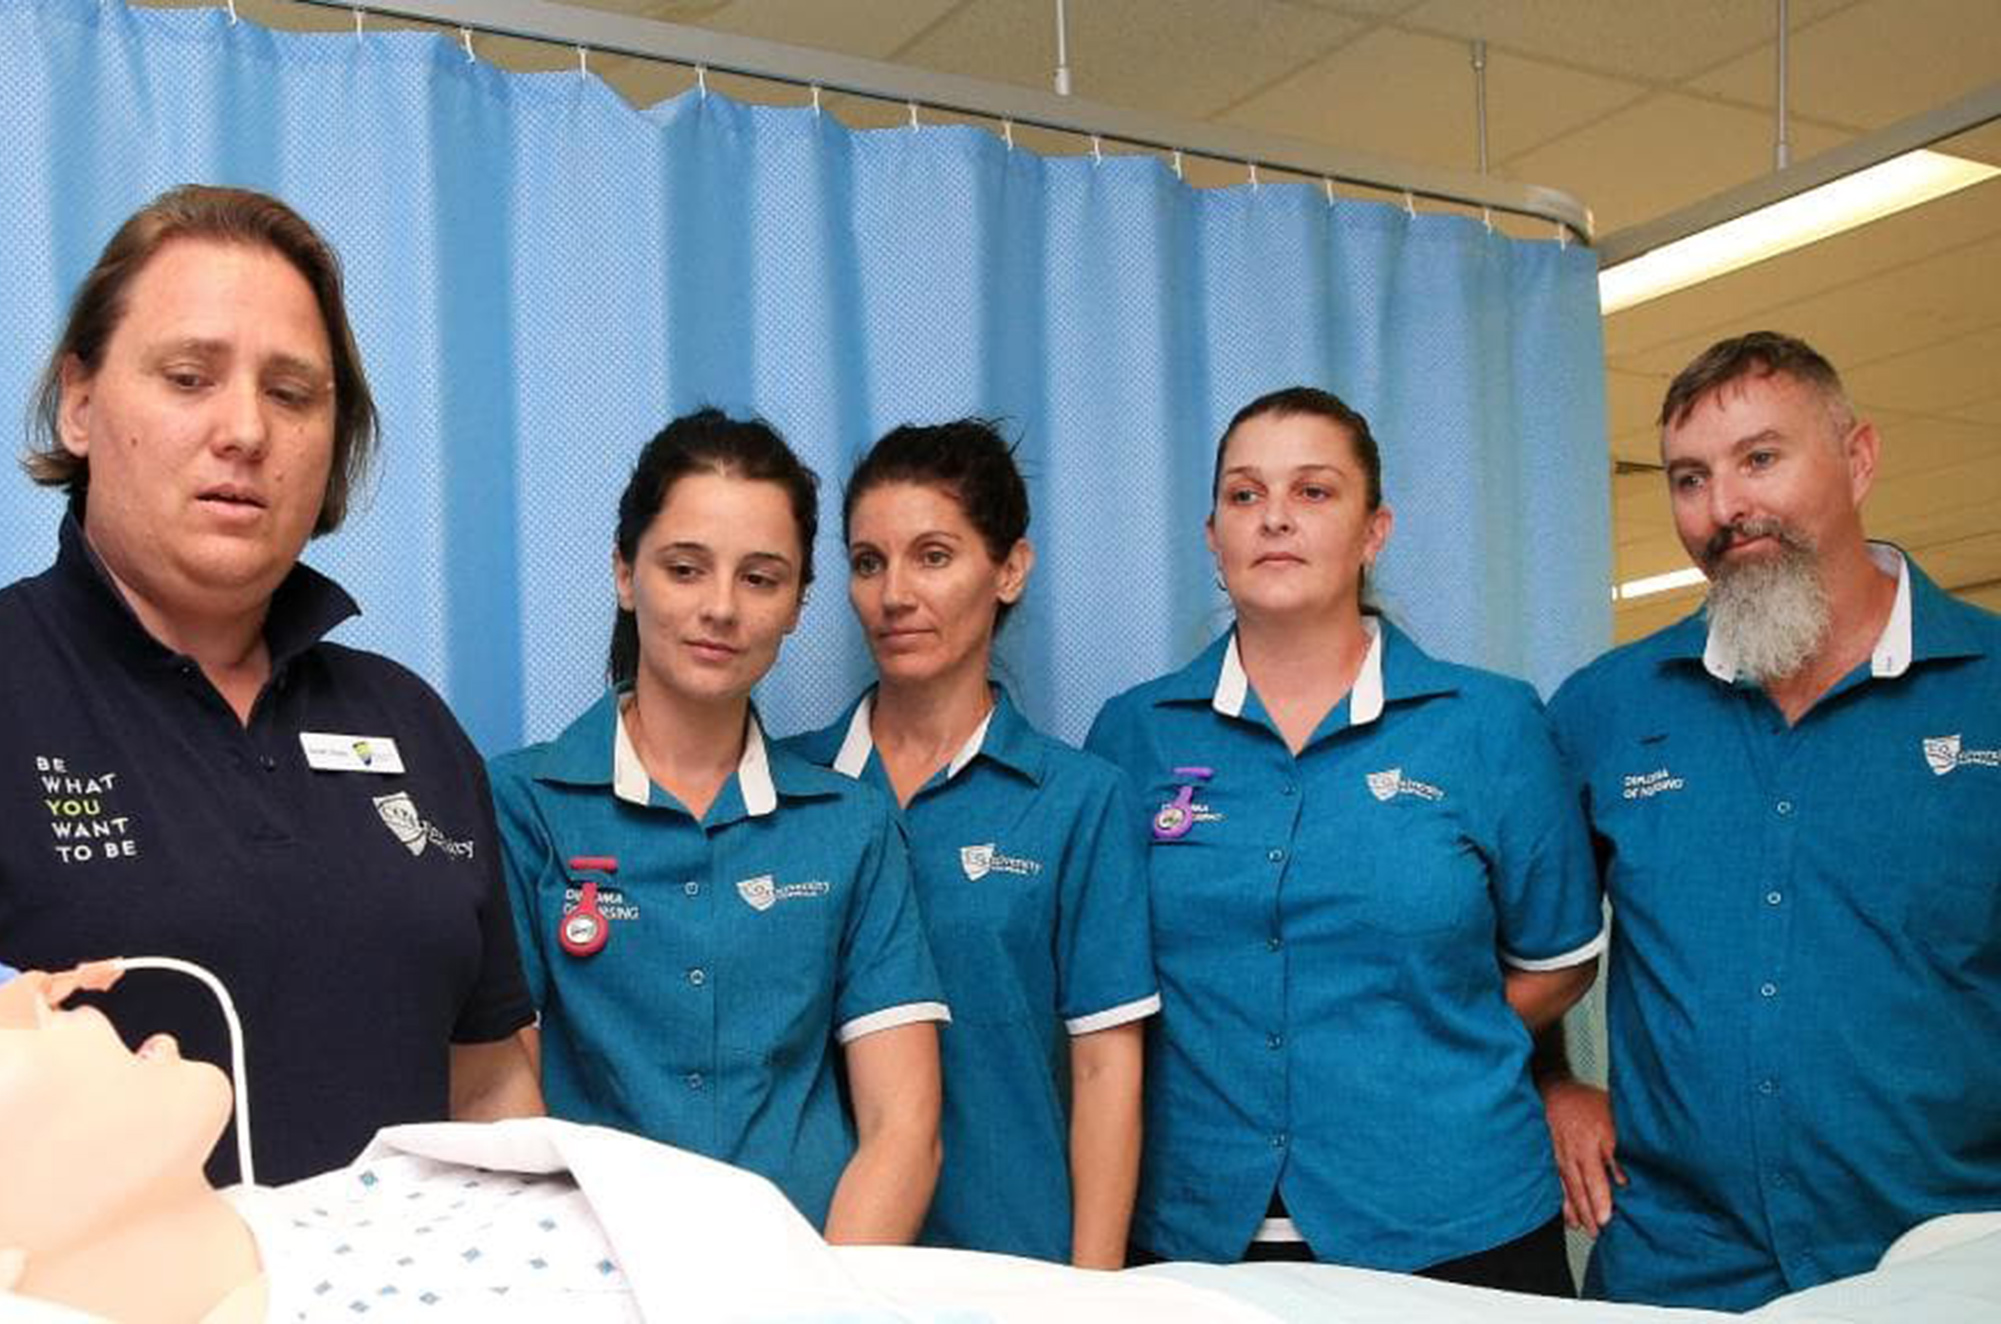 CQU Student Uniforms